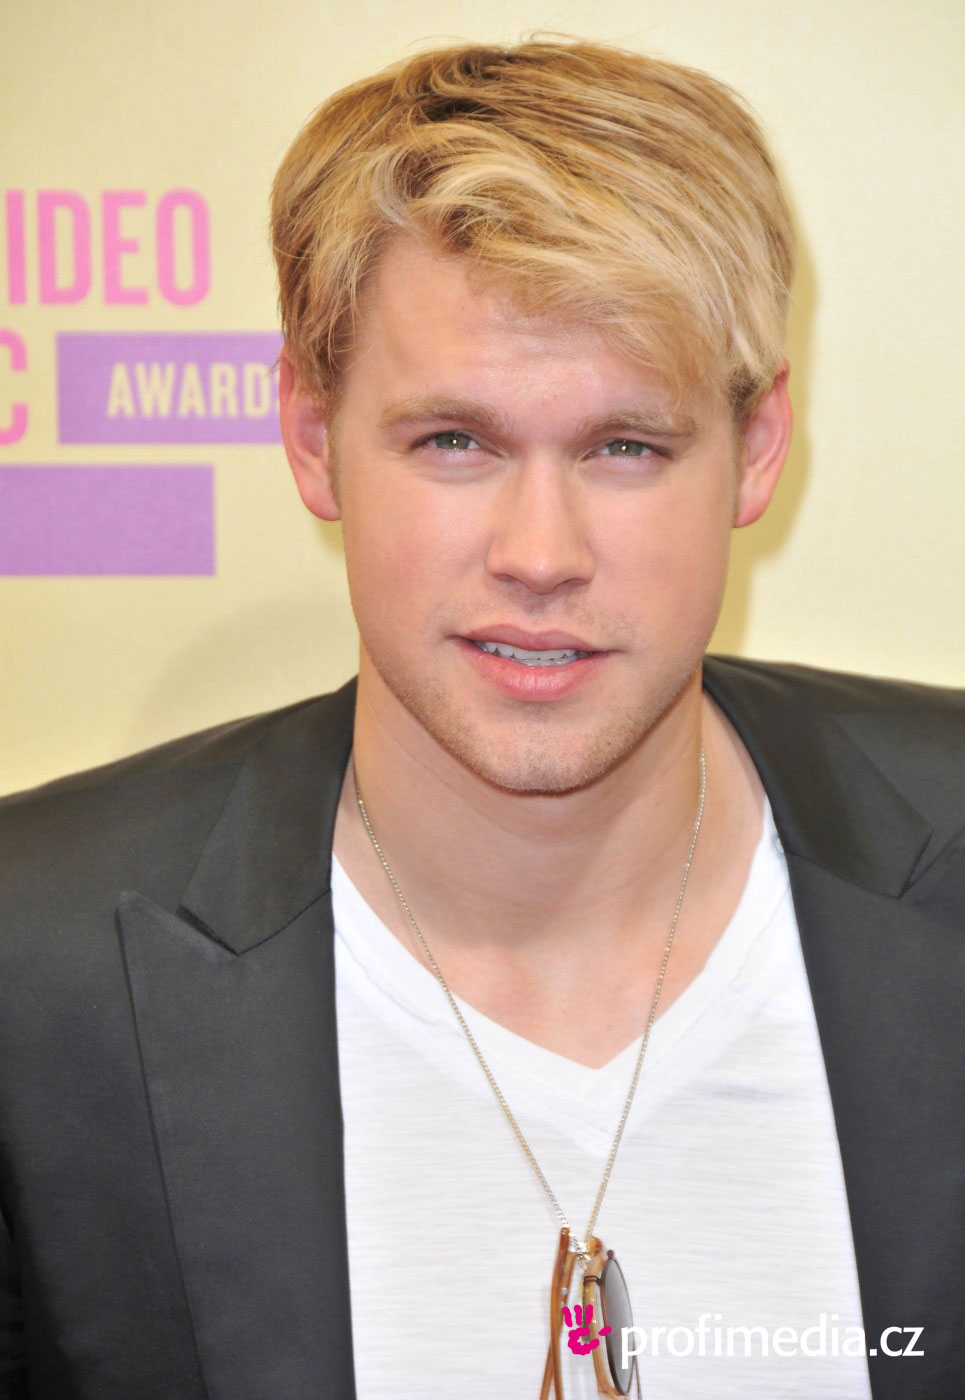 chord overstreet hold on скачатьchord overstreet hold on, chord overstreet hold on перевод, chord overstreet hold on скачать, chord overstreet hold on перевод песни, chord overstreet homeland перевод, chord overstreet hold on слушать, chord overstreet перевод, chord overstreet – hold on chords, chord overstreet – hold on минус, chord overstreet hold on mp3, chord overstreet – hold on аккорды, chord overstreet скачать, chord overstreet hold on перевод на русский, chord overstreet hold on скачать бесплатно, chord overstreet hold on текст и перевод, chord overstreet песни, chord overstreet hold on рингтон, chord overstreet hold on lyrics перевод, chord overstreet hold on скачать рингтон, chord overstreet hold on download